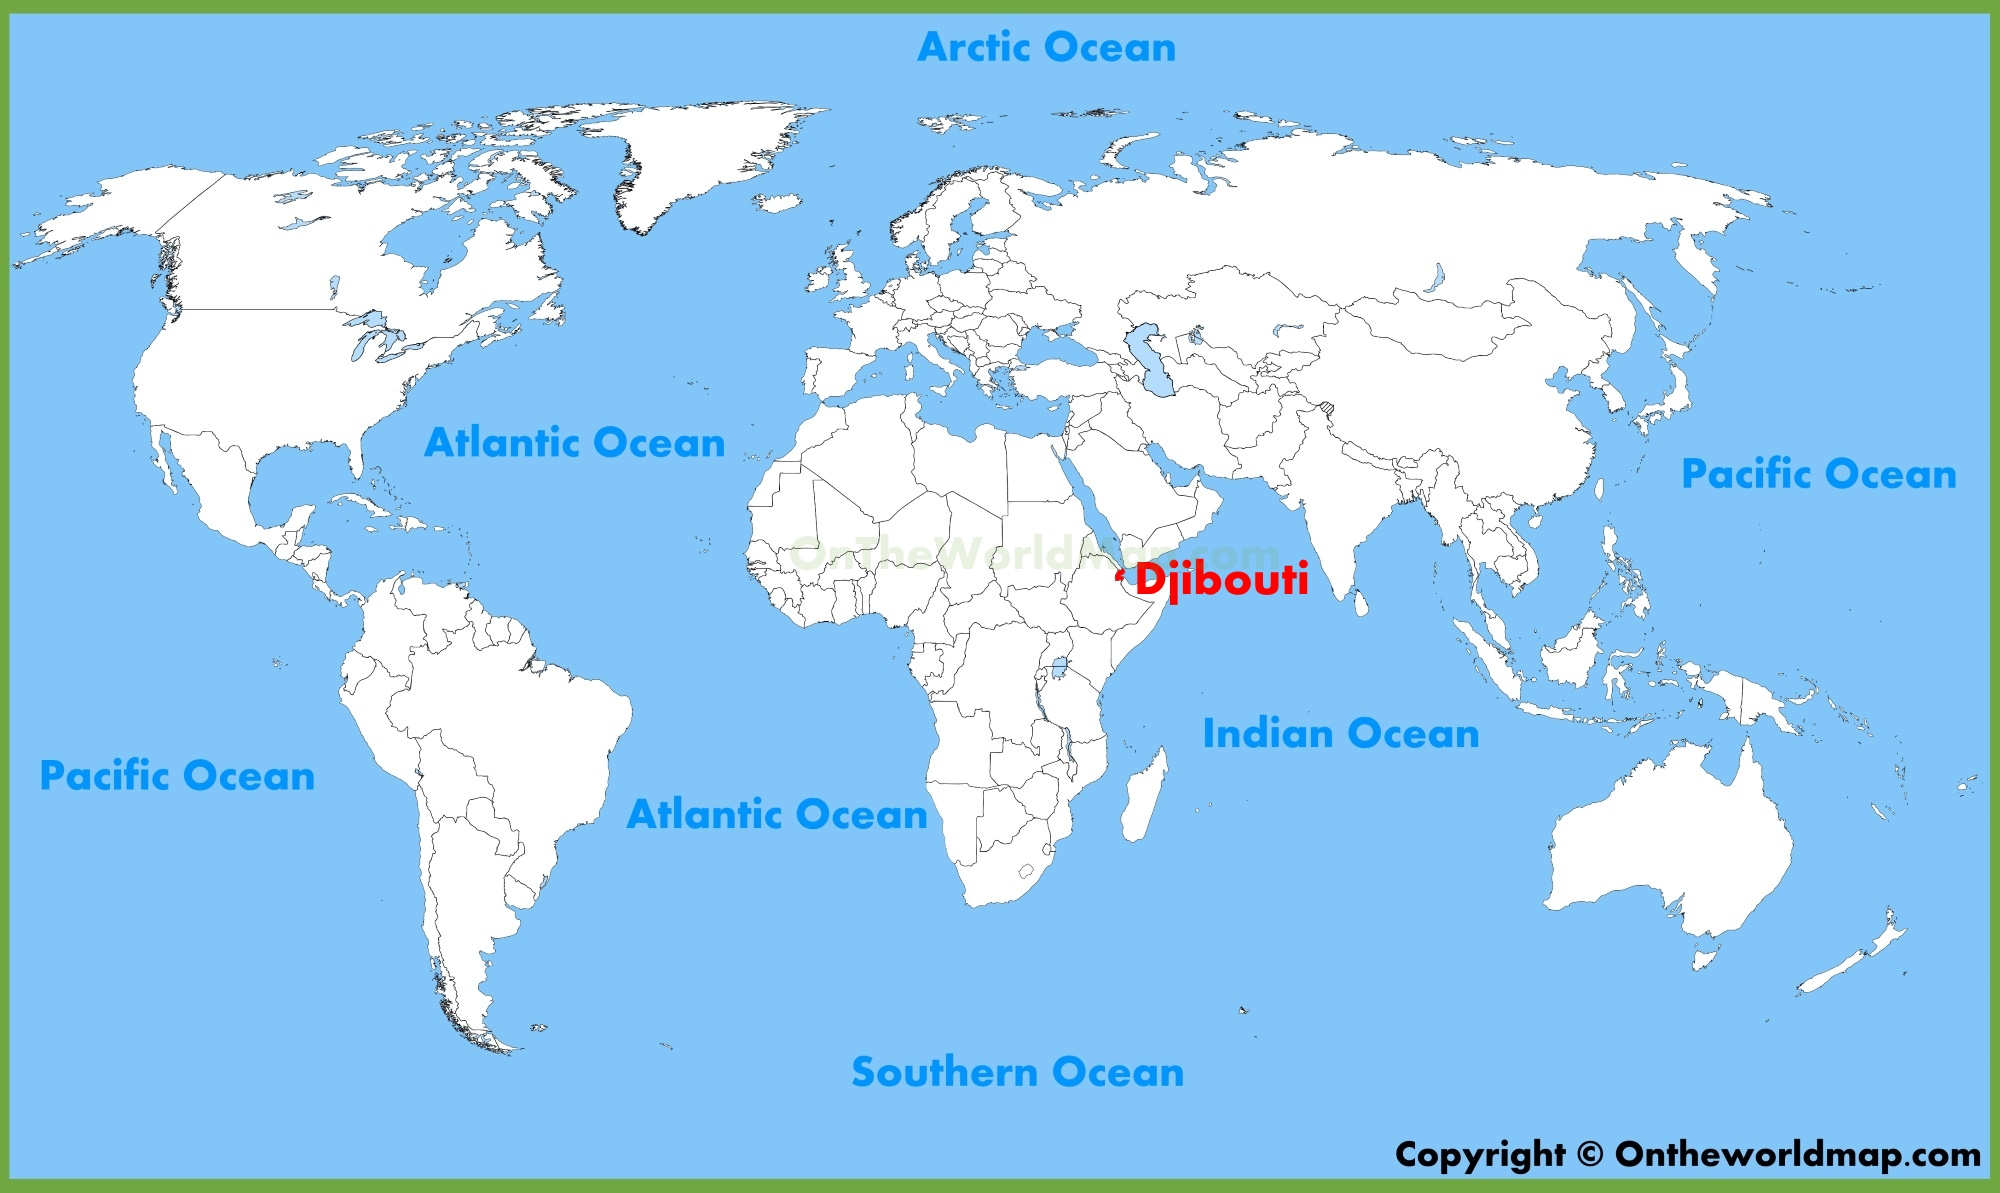 Djibouti On Africa Map.Djibouti Location On The World Map